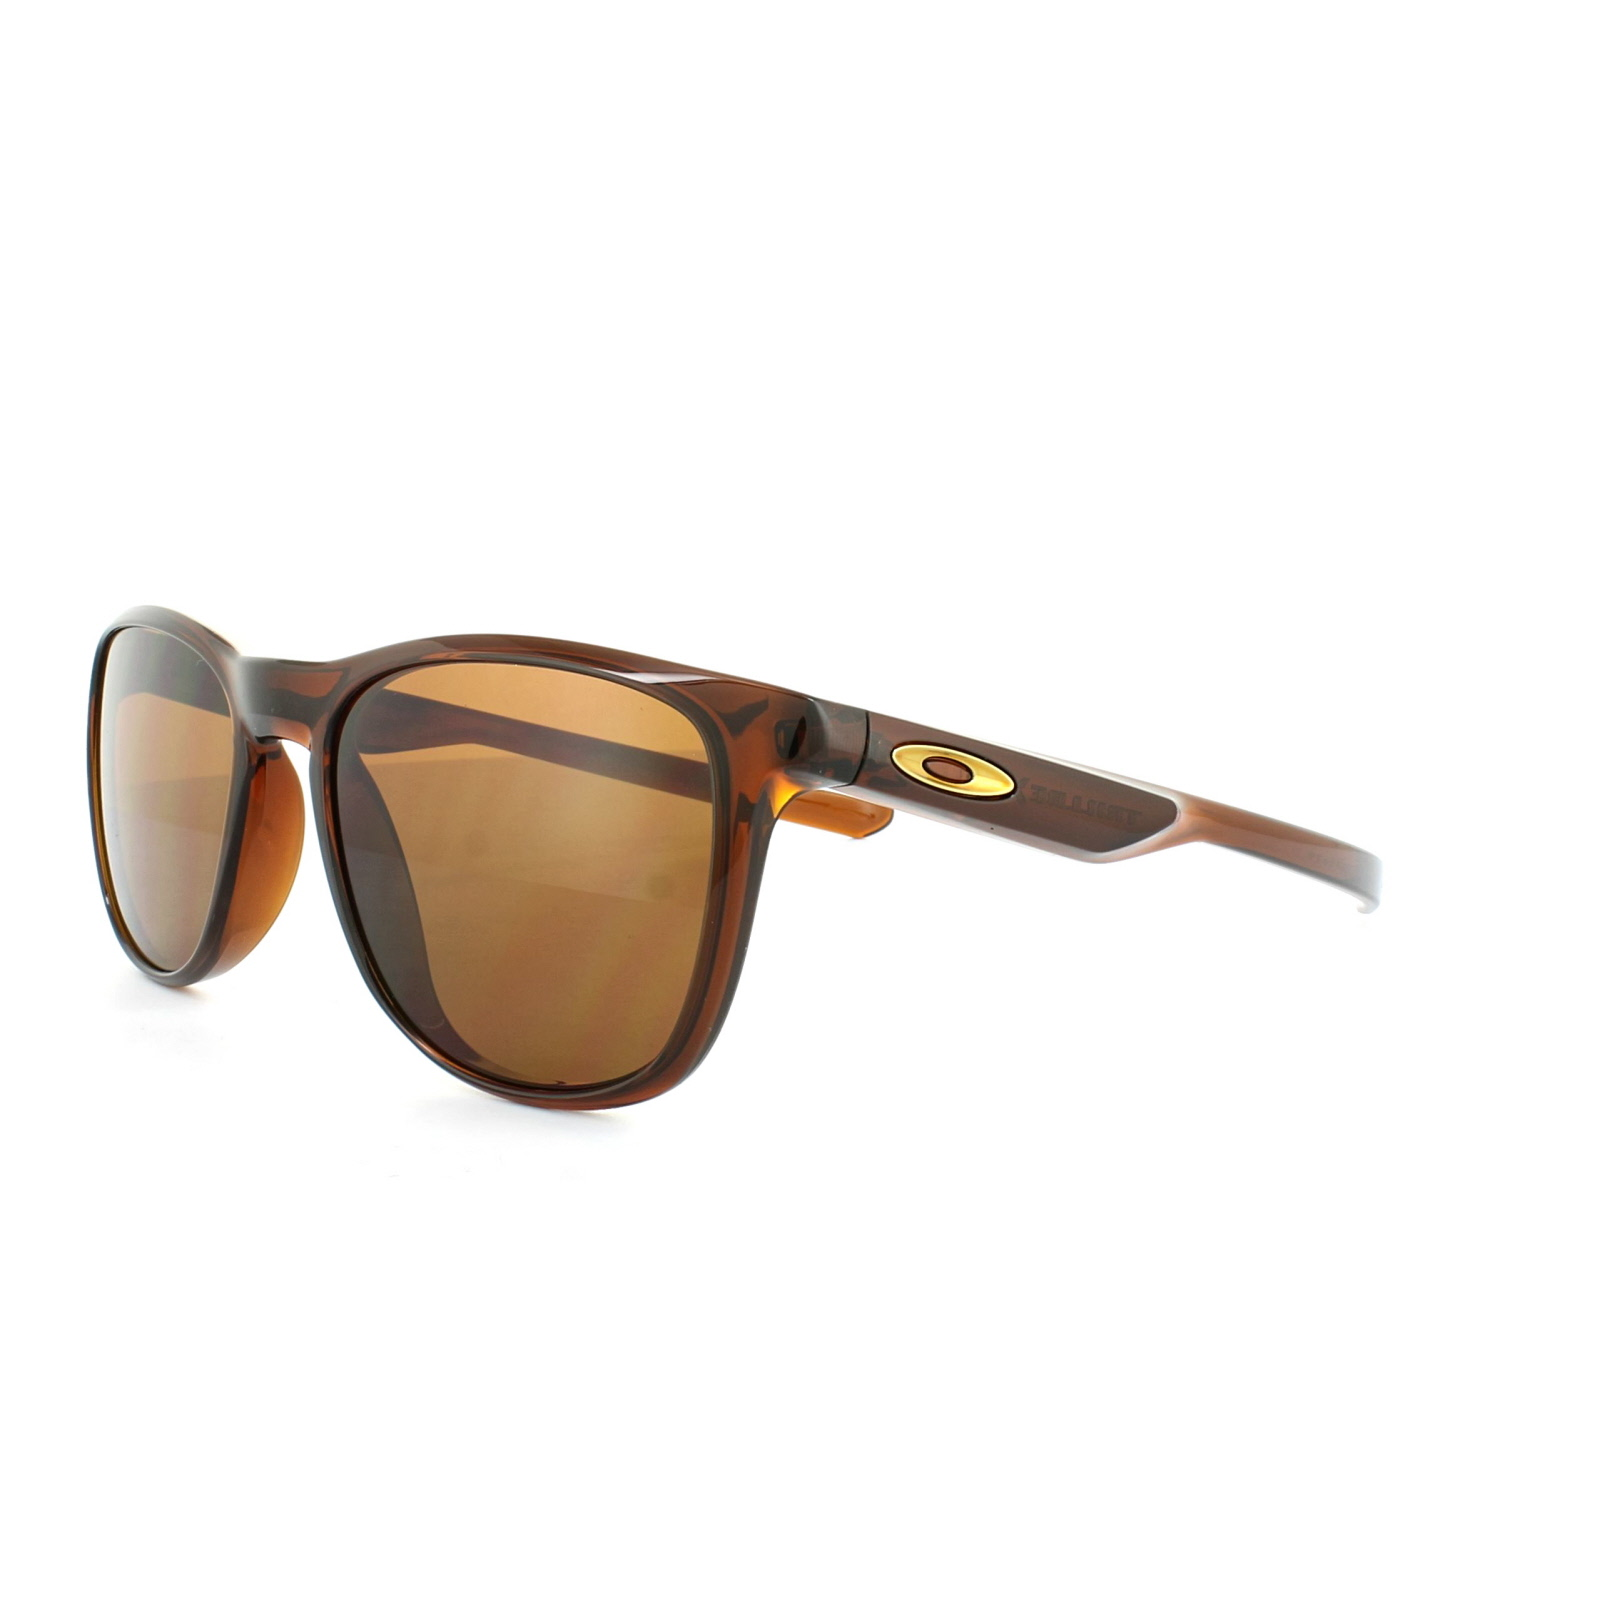 e1fadc5d84a Cheap Oakley Sunglasses - Discounted Sunglasses